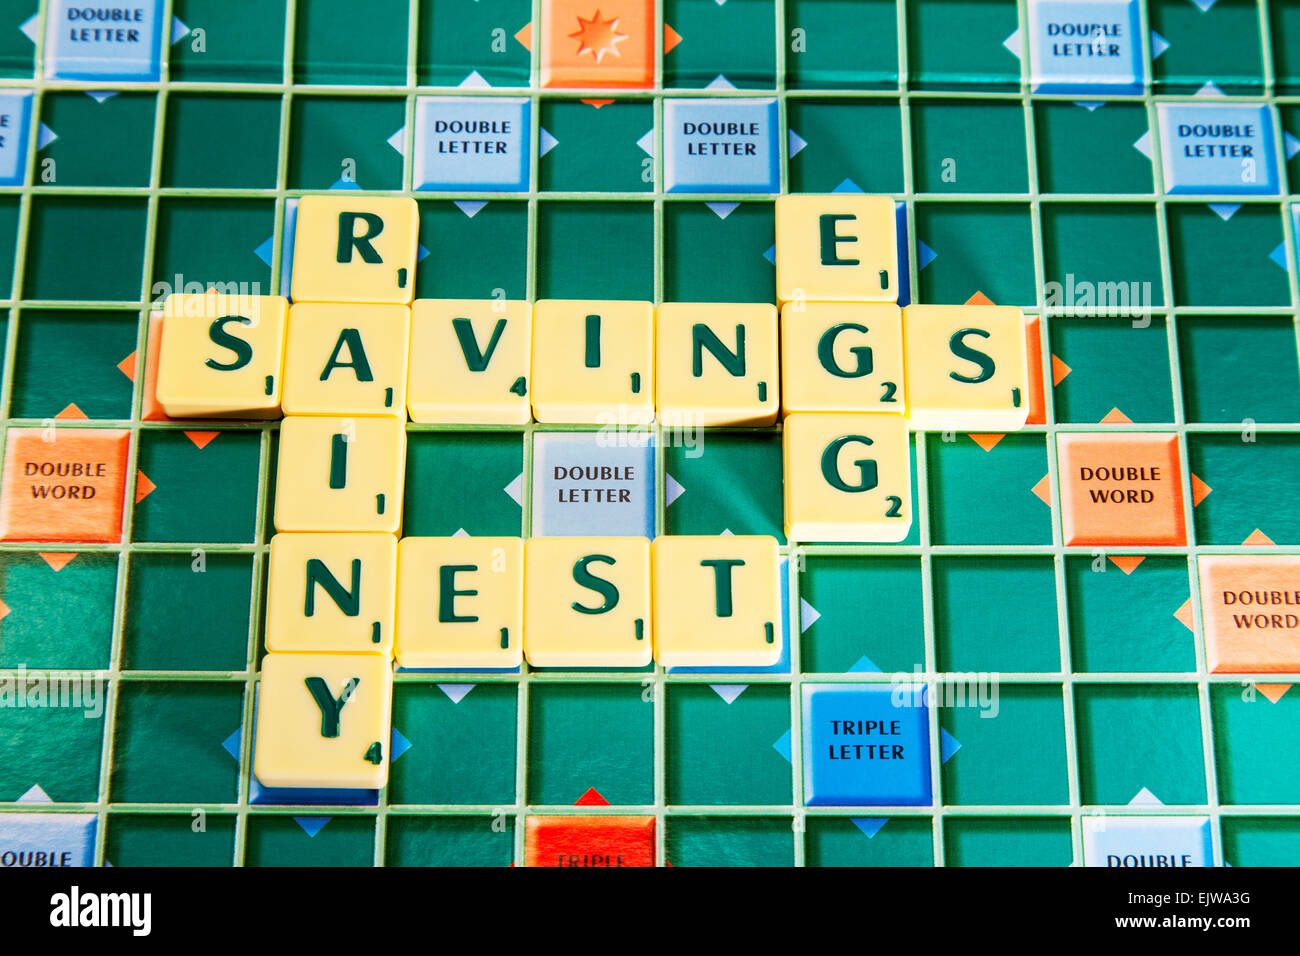 nest egg savings rainy day future pension money save cash words using scrabble tiles to spell out - Stock Image